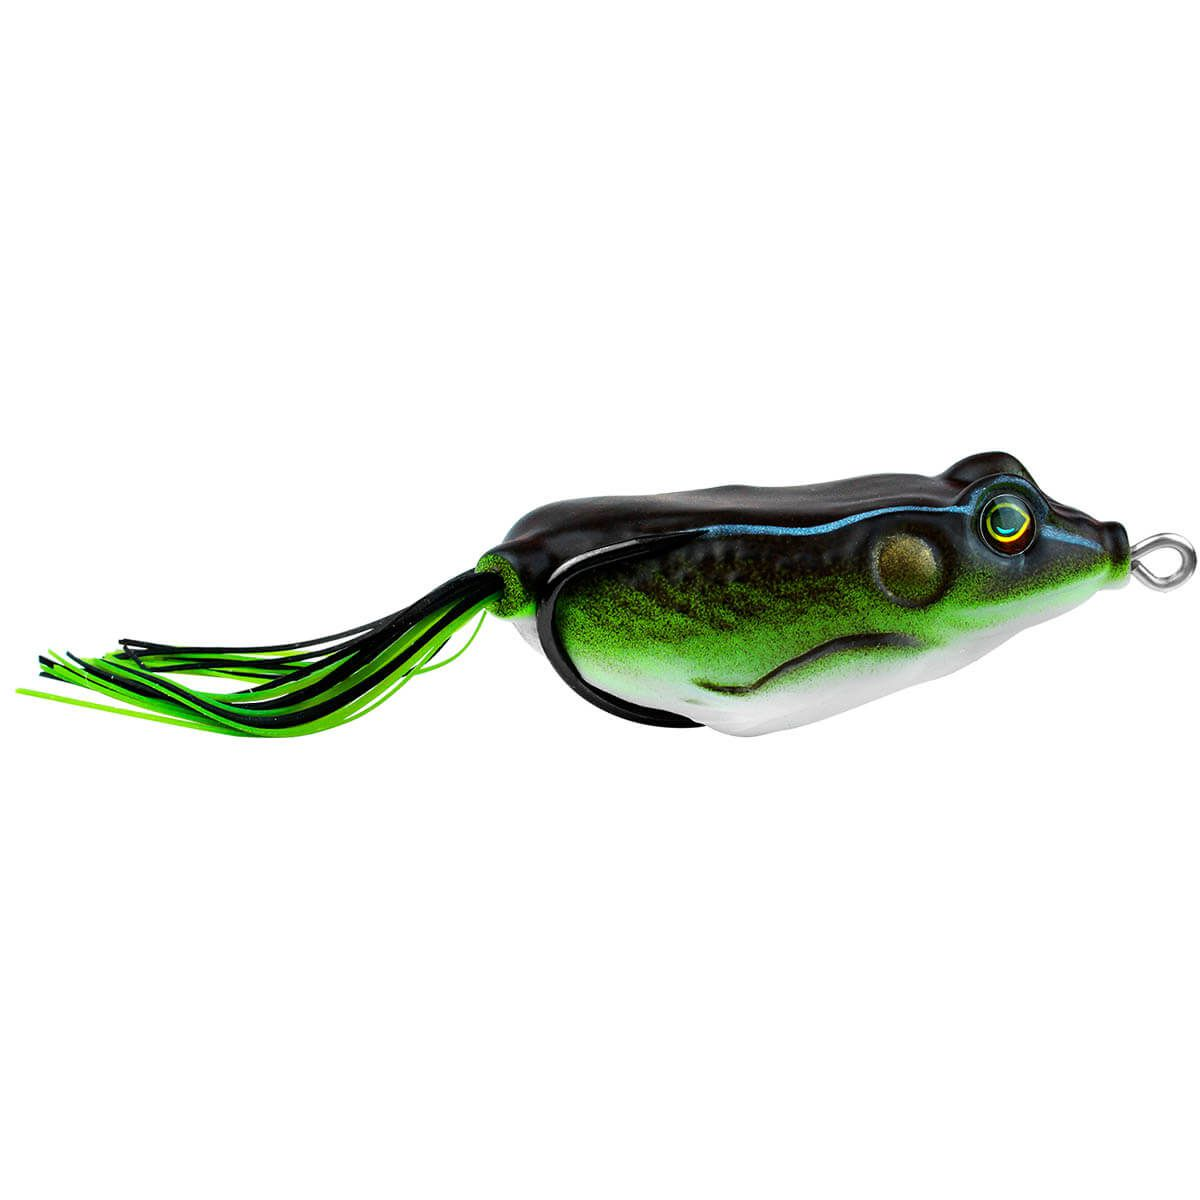 Isca Artificial Albatroz Fishing Top Frog XY10 6cm 18gr